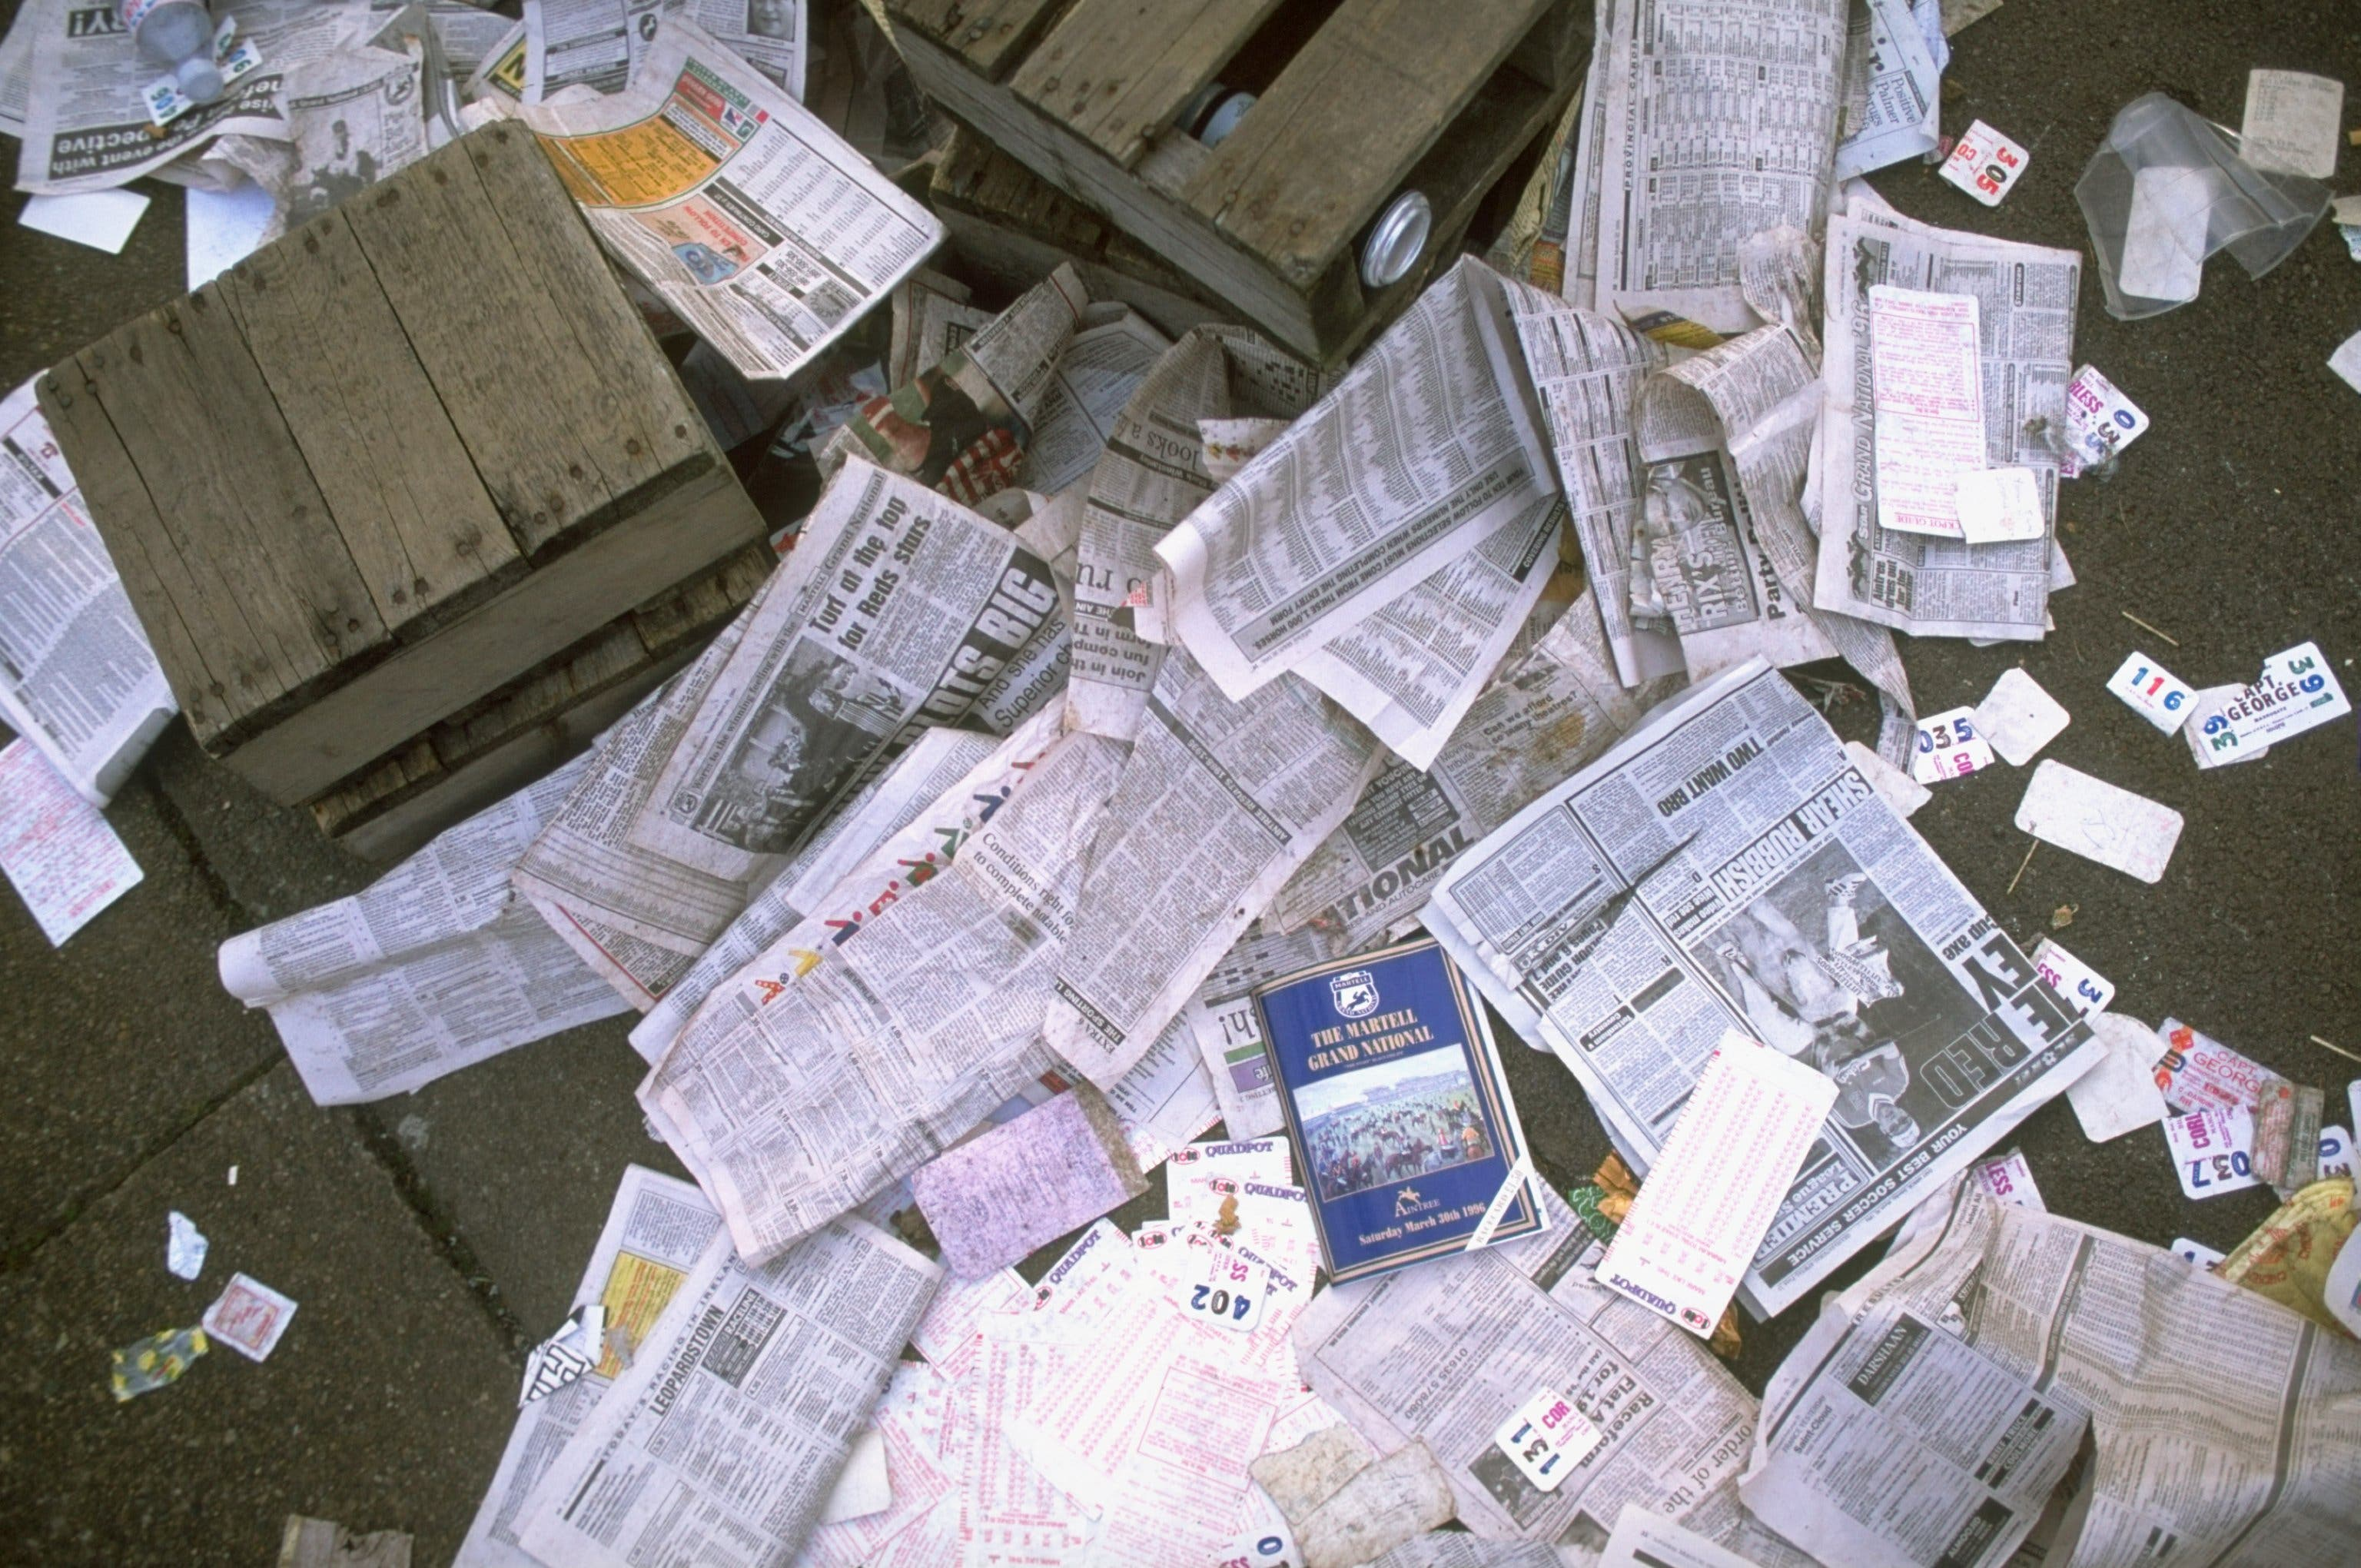 Newspapers in Egypt were tested and stretched by the People's Story.